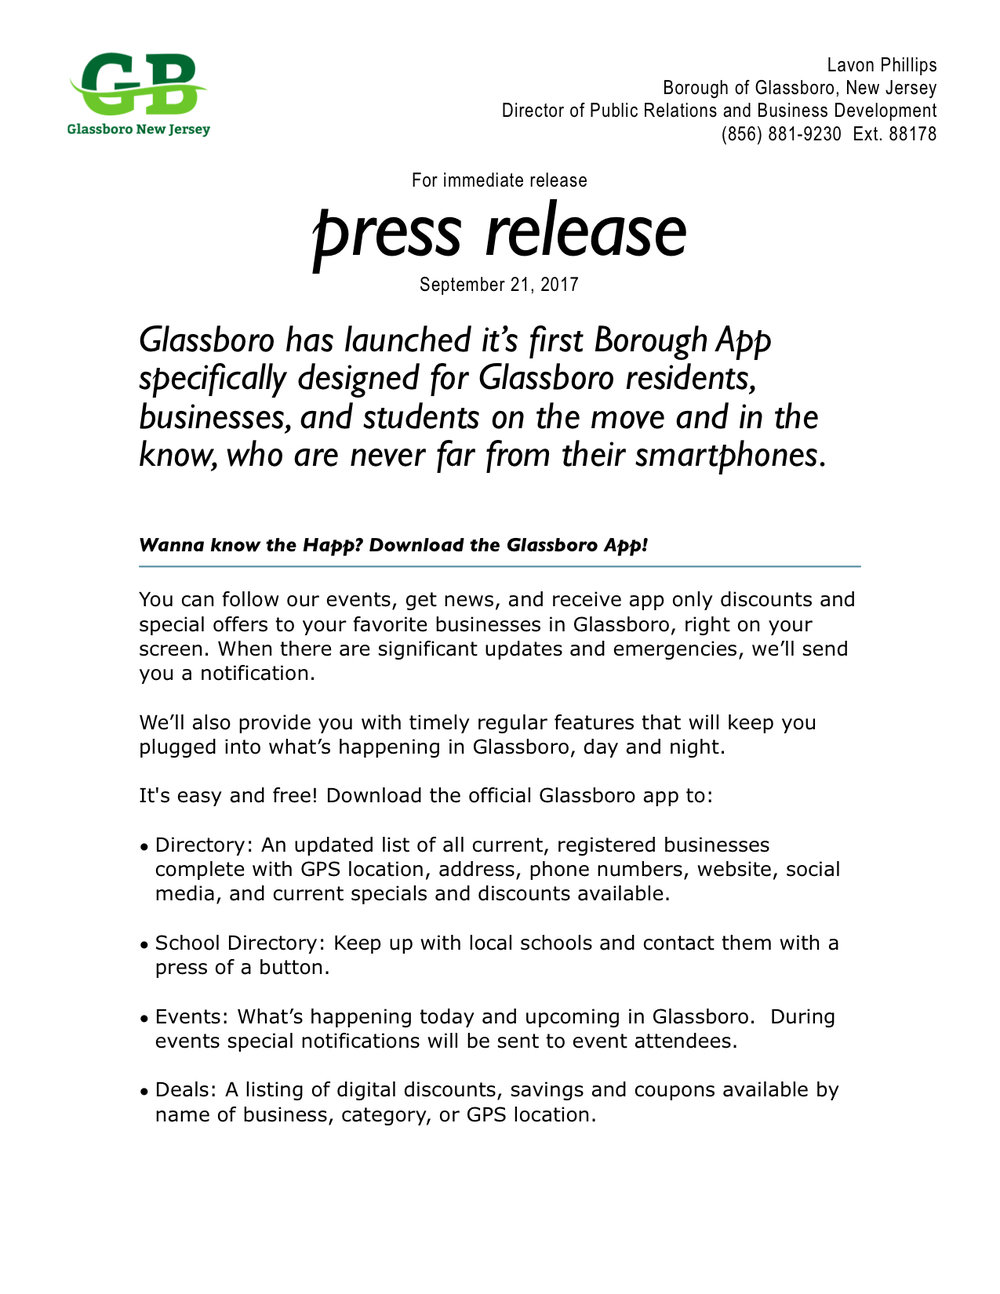 Wanna know the happ get the new glassboro app official for App press release template